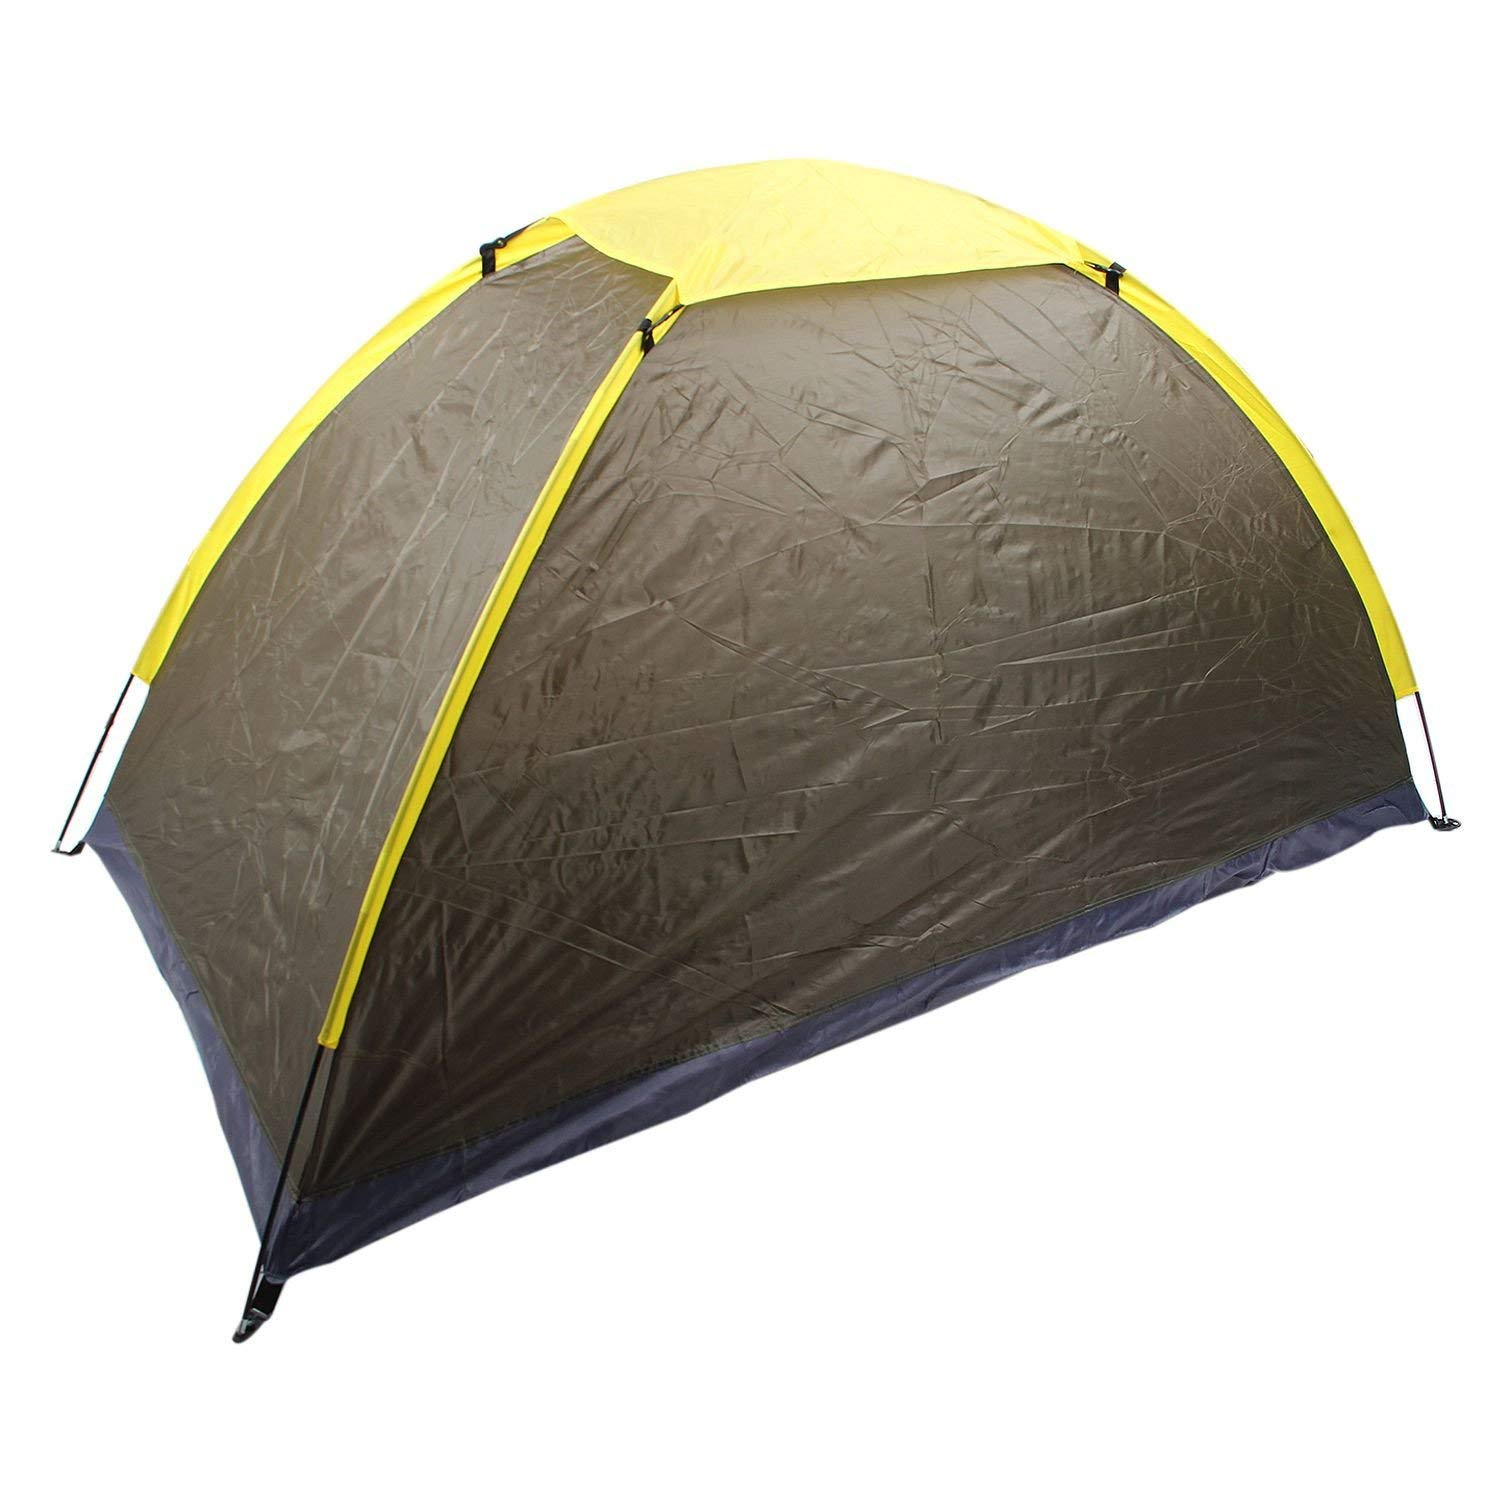 Nutsima Outdoor camping tent single People camping tent Army Green